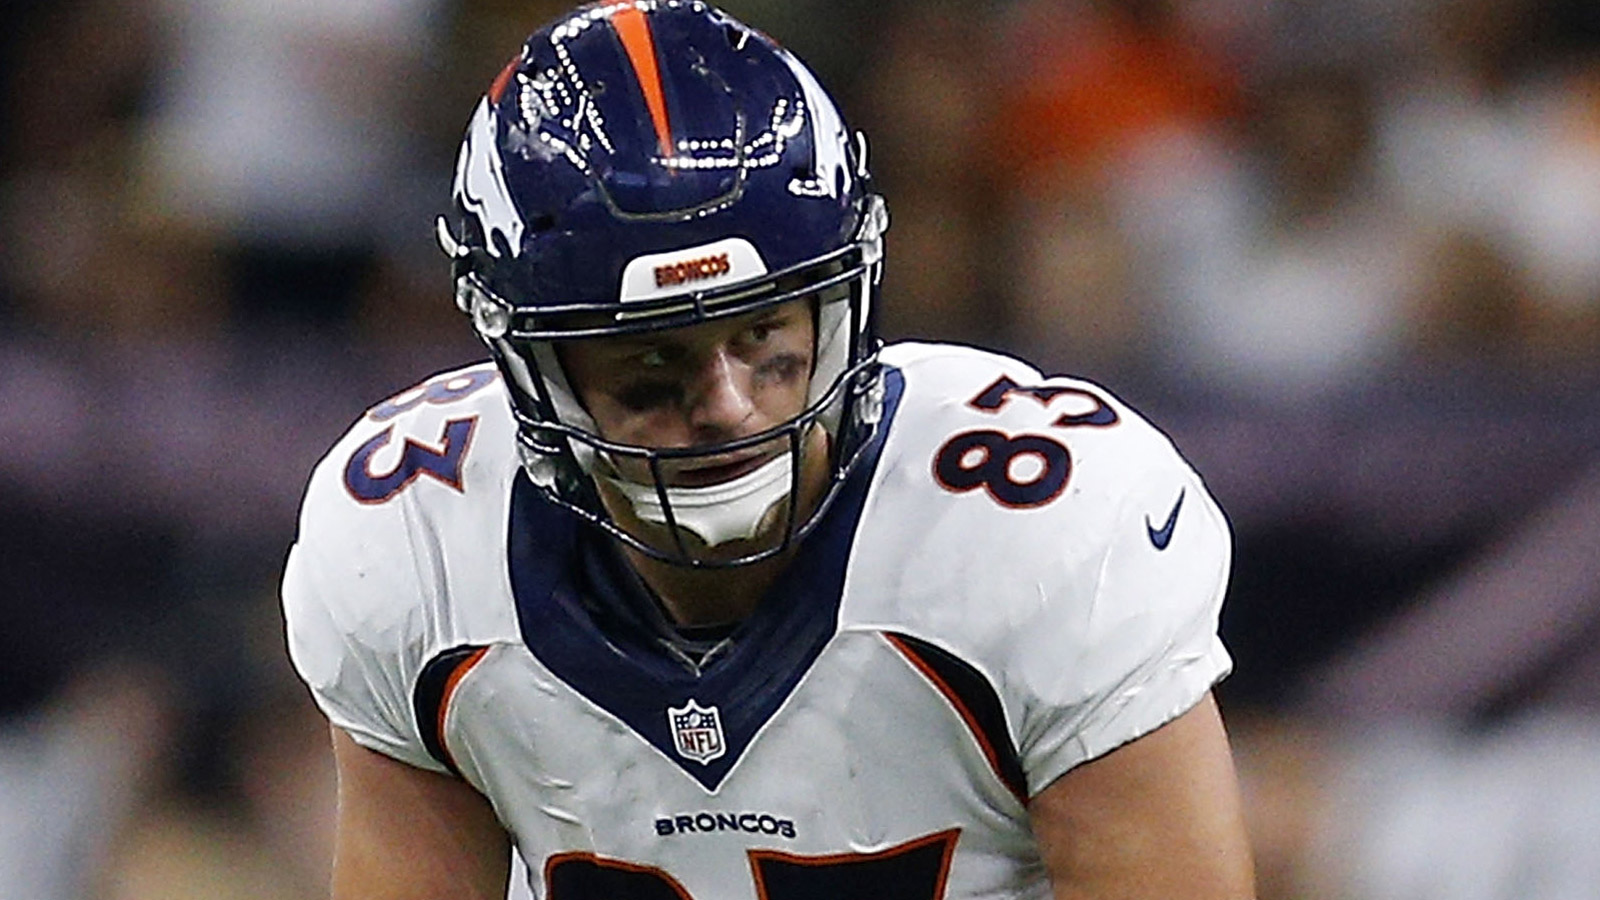 A.J. Derby of the Denver Broncos lines up during a game against the New Orleans Saints at the Mercedes-Benz Superdome on Nov. 13, 2016 in New Orleans, Louisiana. (credit: Jonathan Bachman/Getty Images)